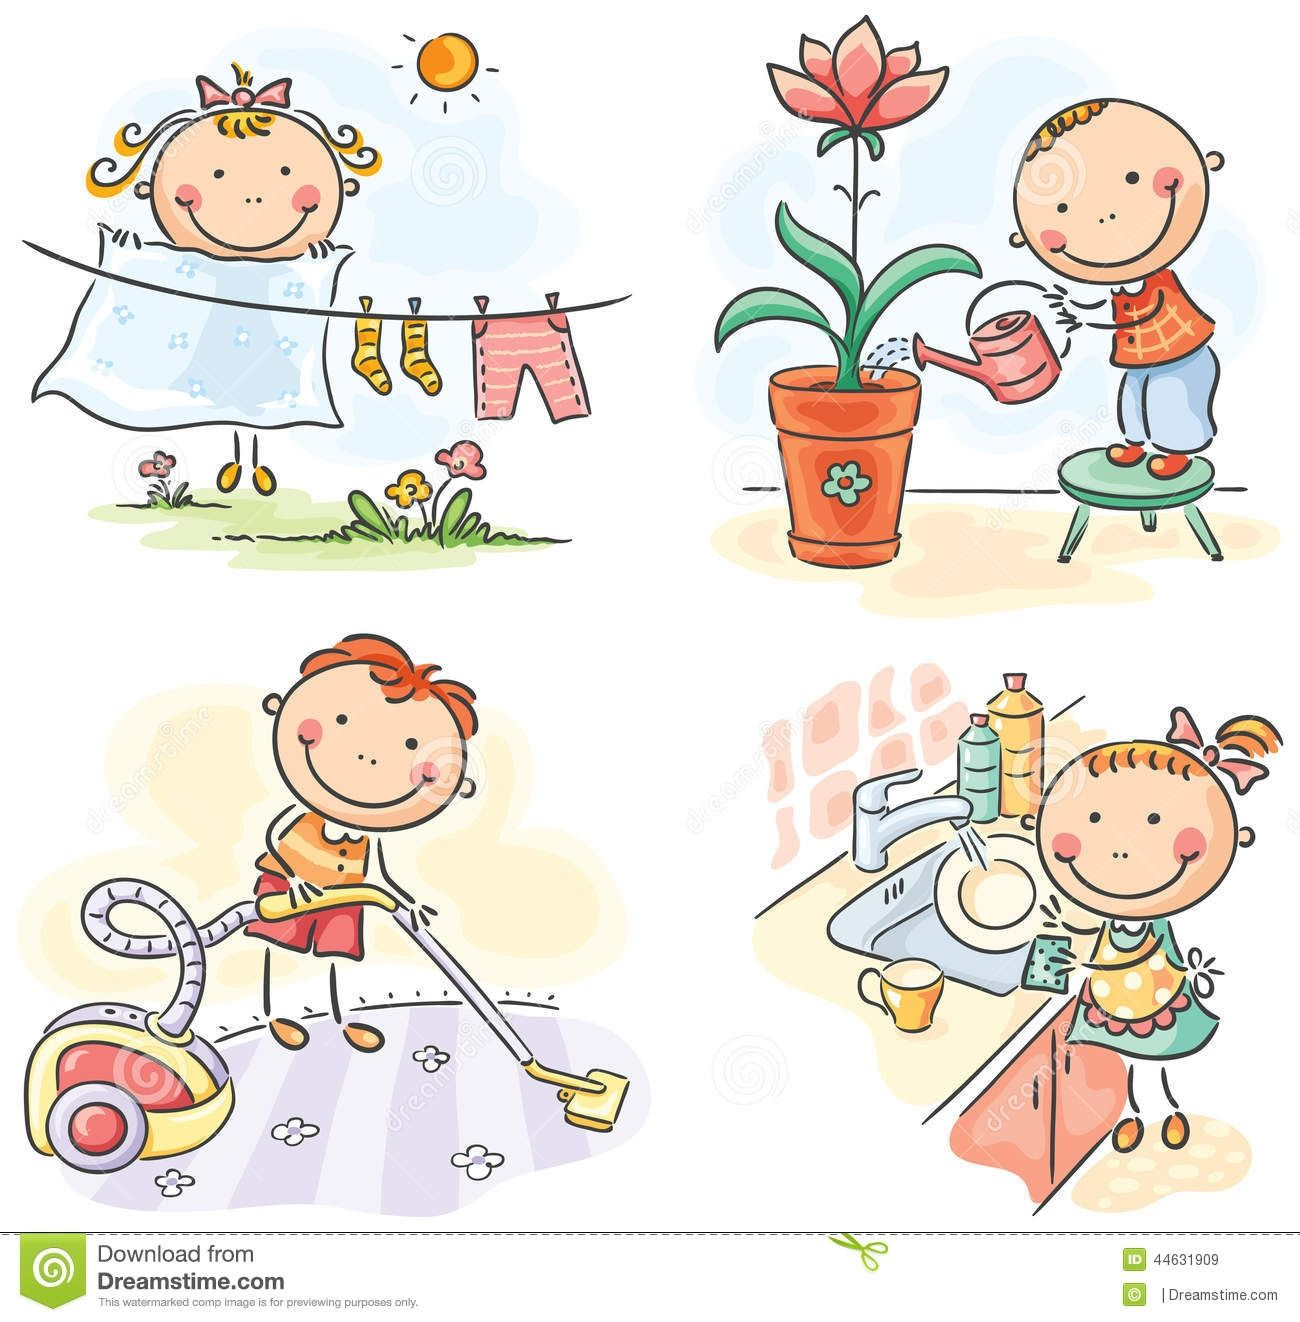 kids helping their parents | fun and creative | pinterest